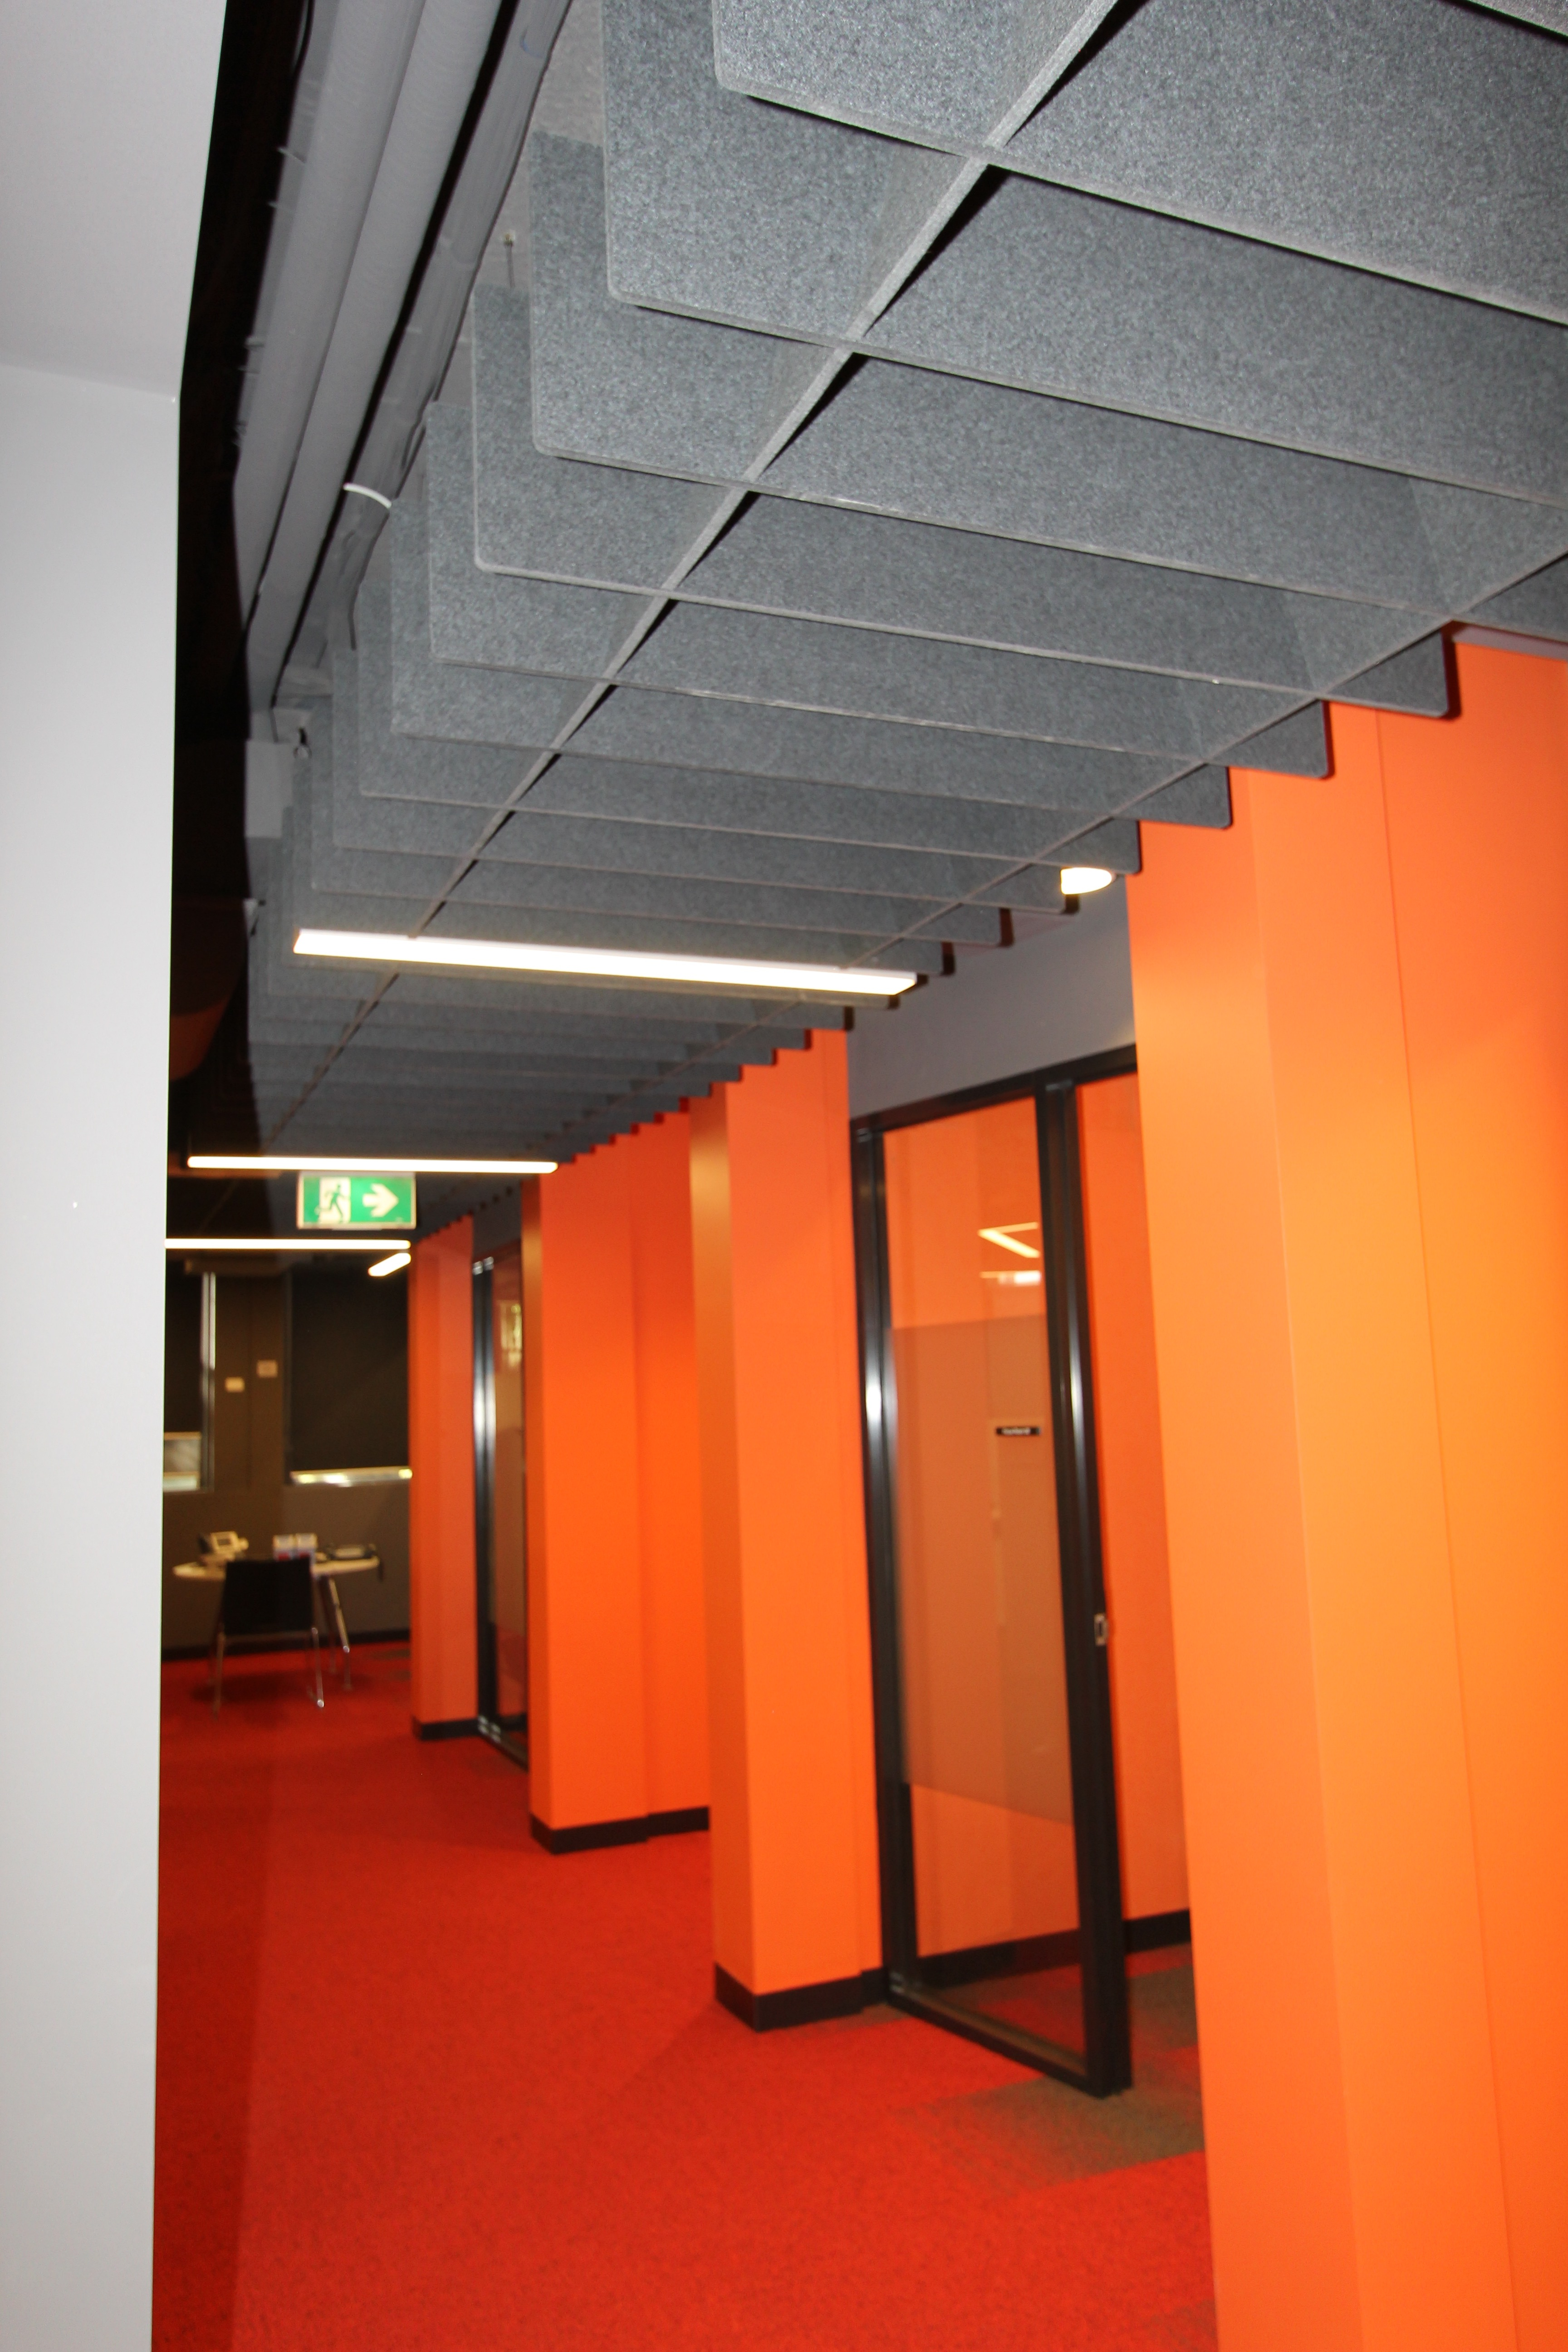 Monash University Acoustic Trapezium Ceiling Lattice